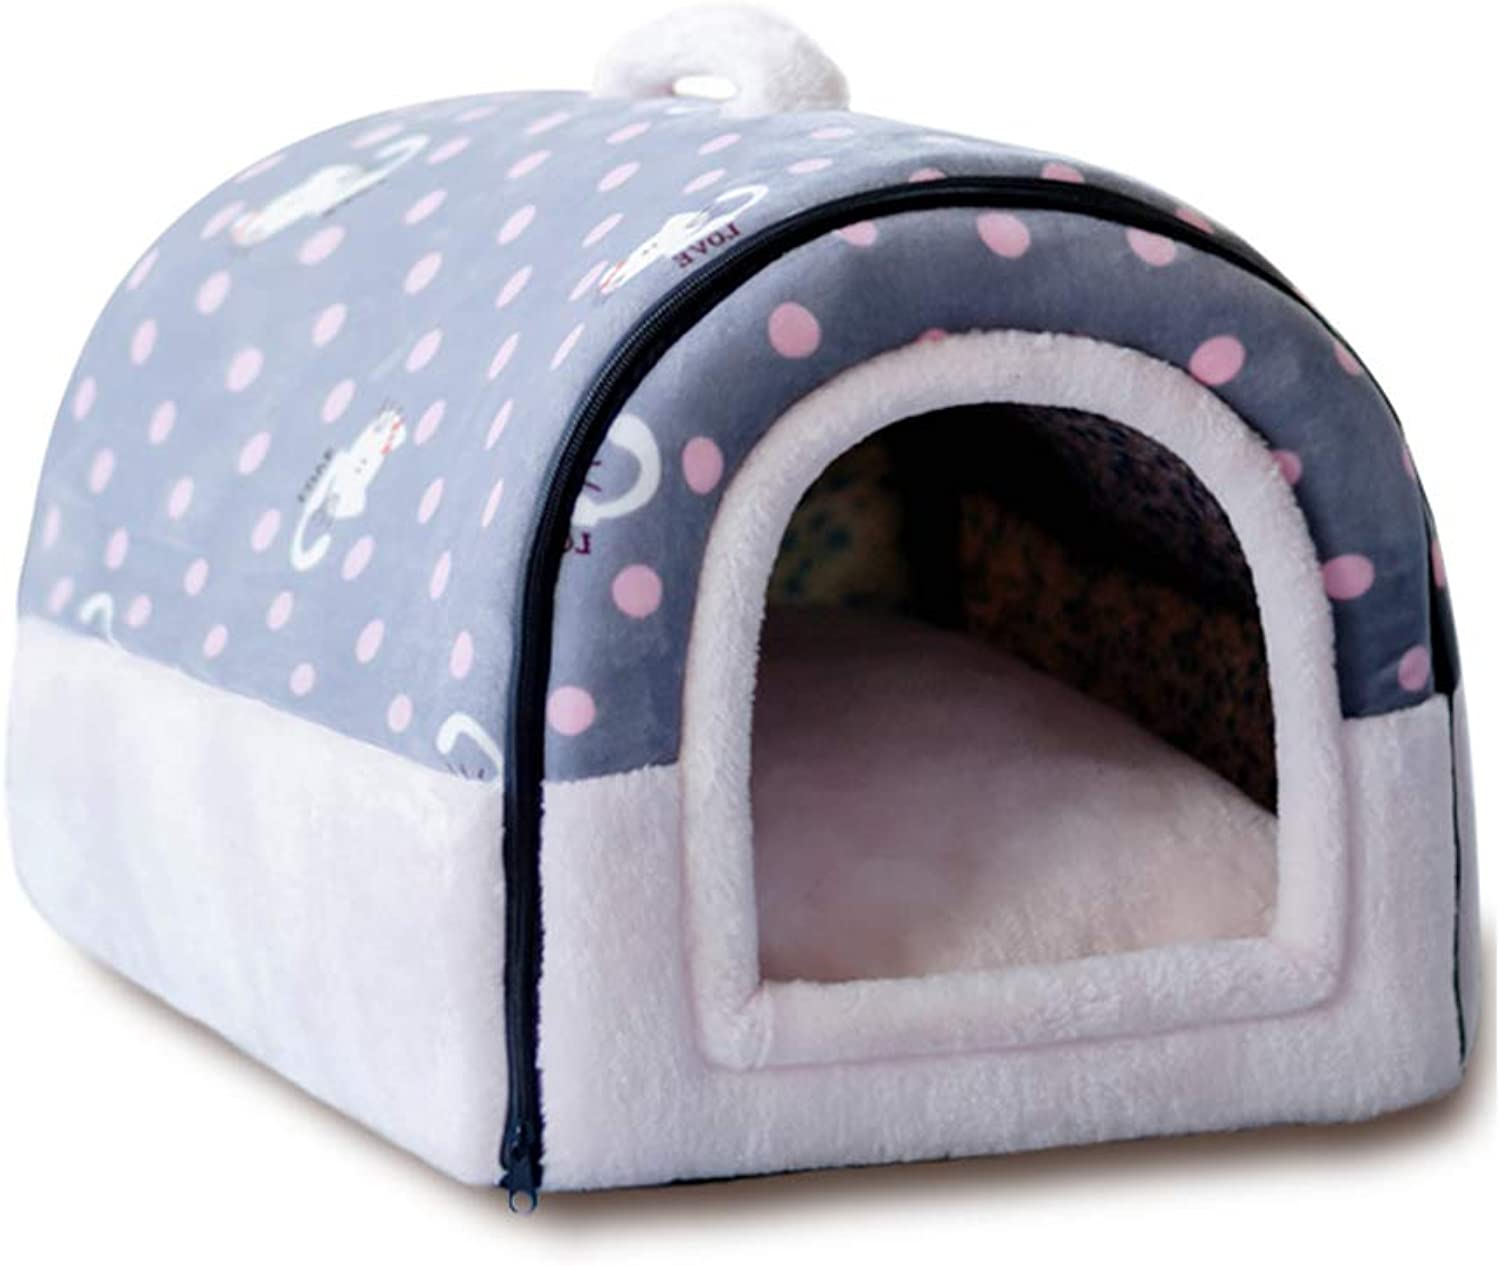 B&F Kennel, 2 In 1 Four Seasons Winter Warm Small DOG Kennel Removable Washable Pet Supplies Cat Litter Cat House (color   G, Size   M)